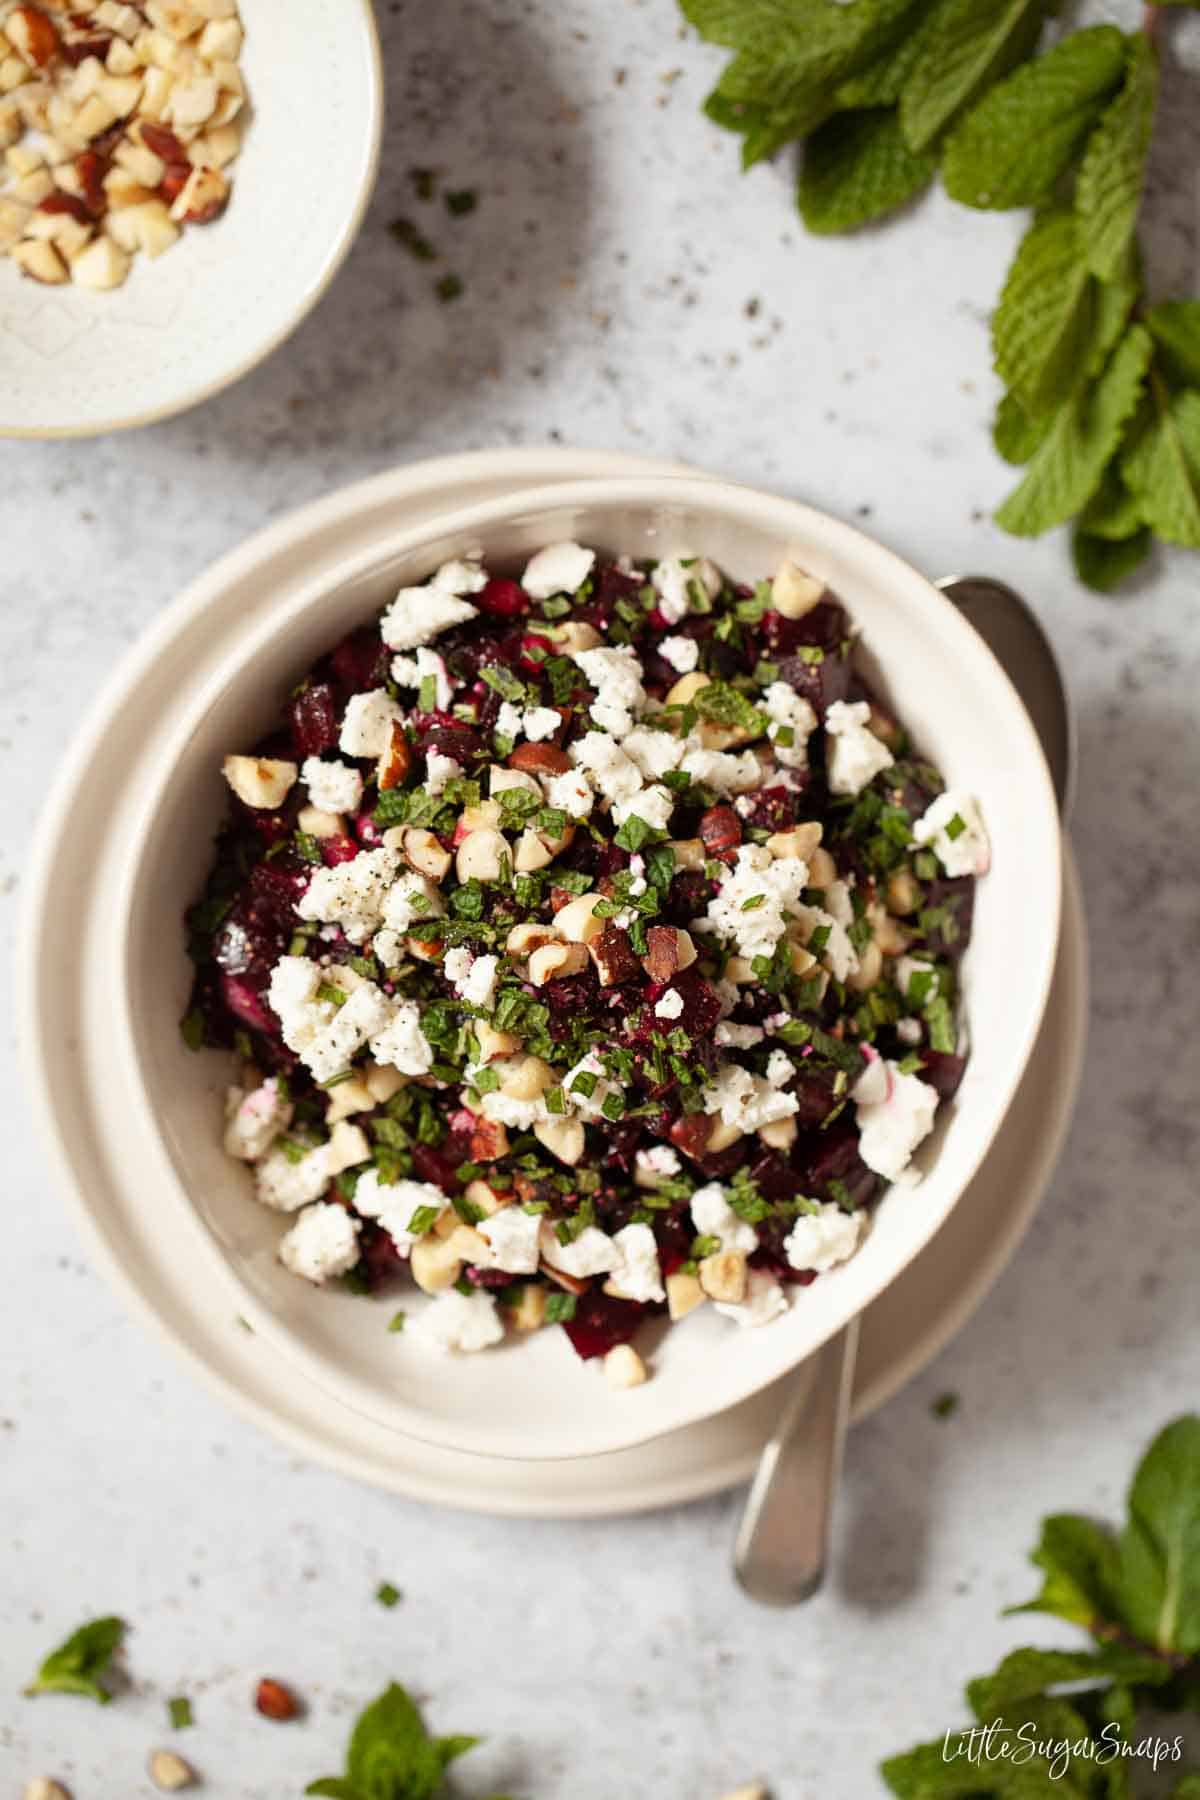 A bowl of beetroot and feta cheese in a bowl with a serving spoon alongside